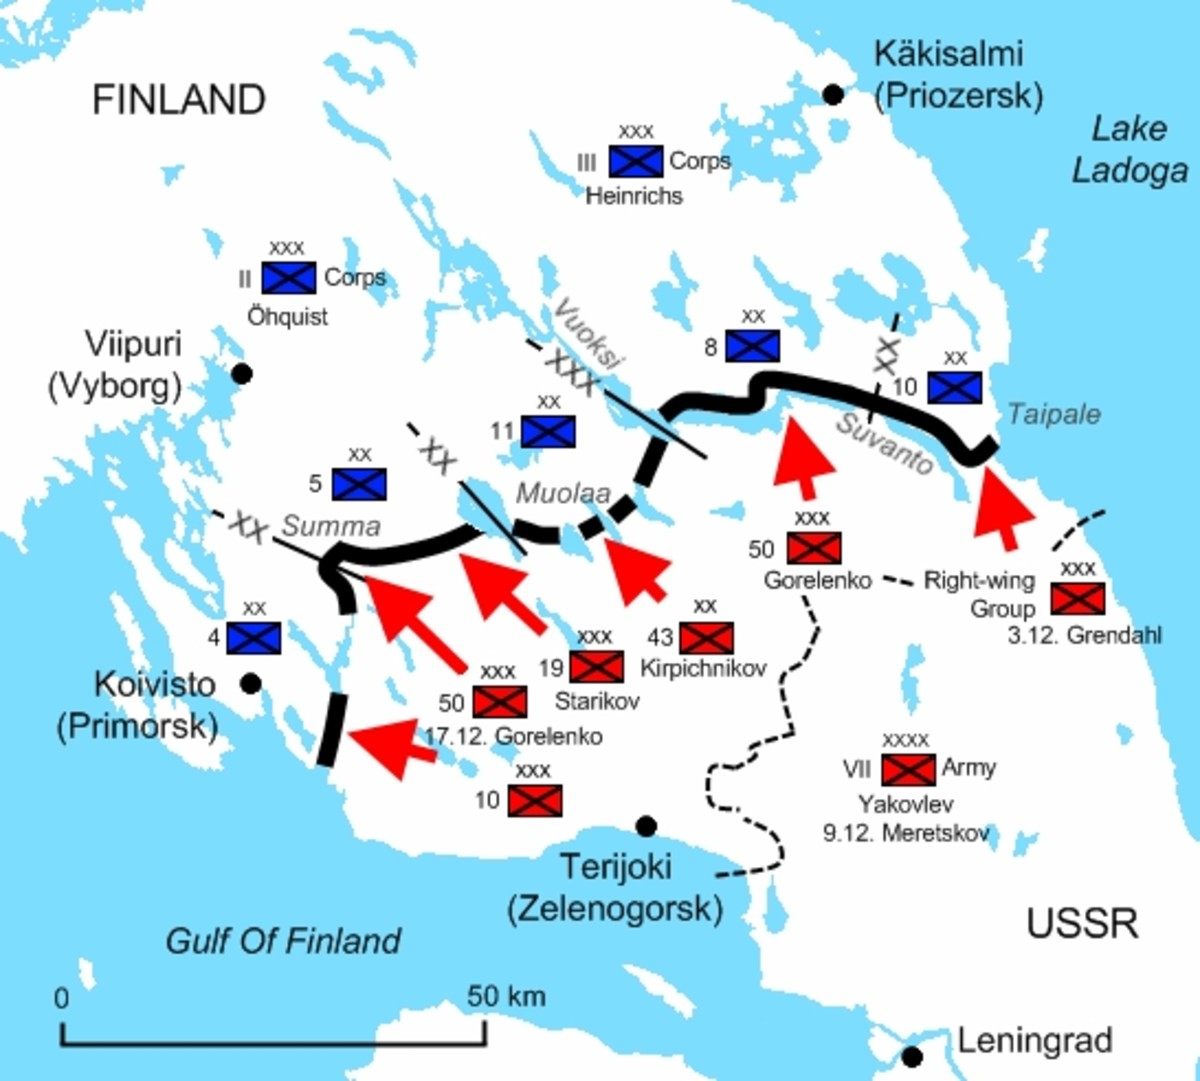 WW2: The Mannerheim Line from the Gulf of Finland to Lake Ladoga.  Built 1920-24, 1932-39; Construction materials: Wood, Boulders, Concrete, steel, natural features